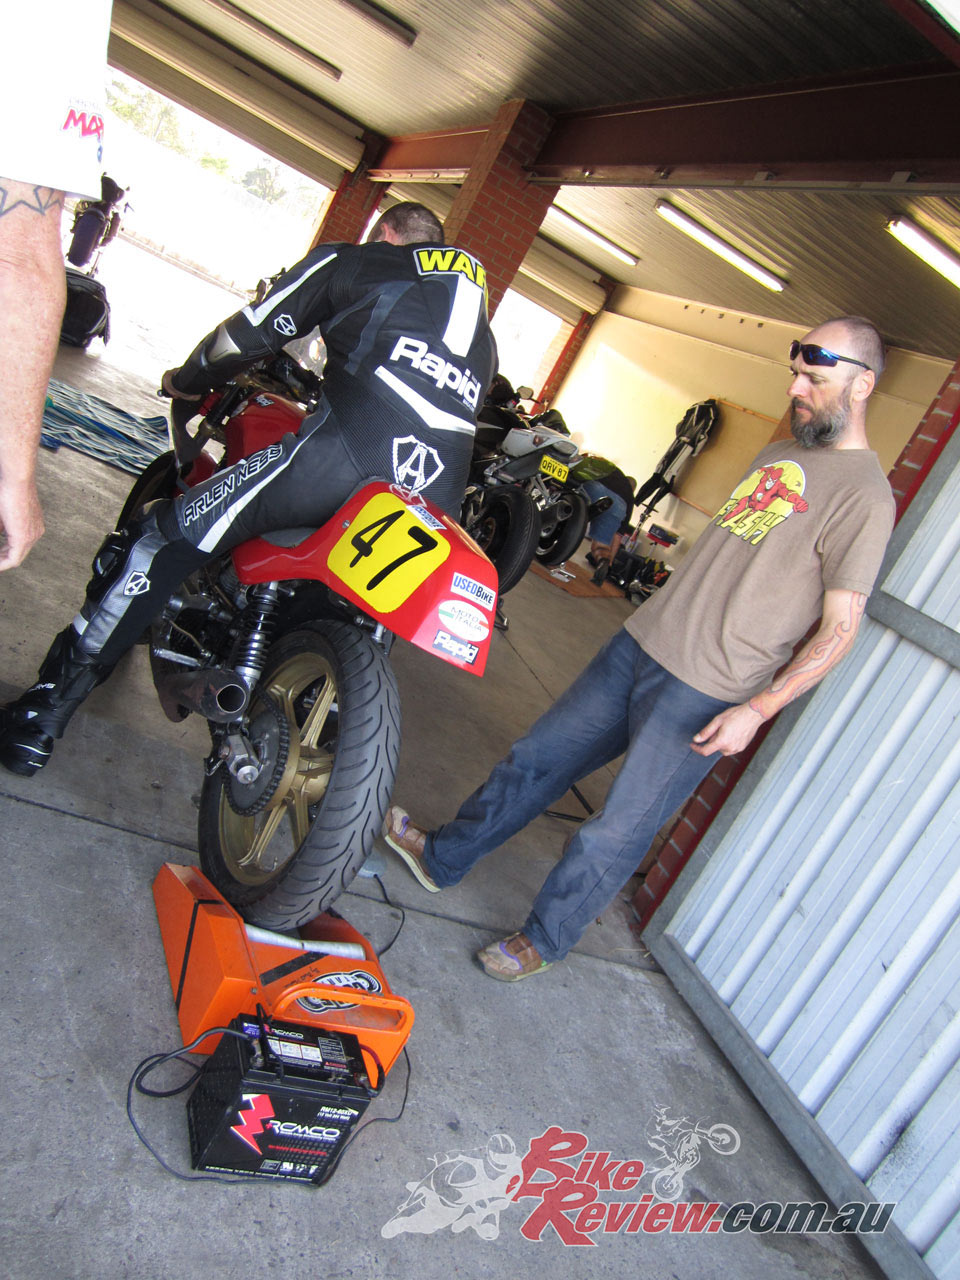 Classic Racer Ducati Pantah Race Feature Old School On Rails Wiring Harness Img 0373